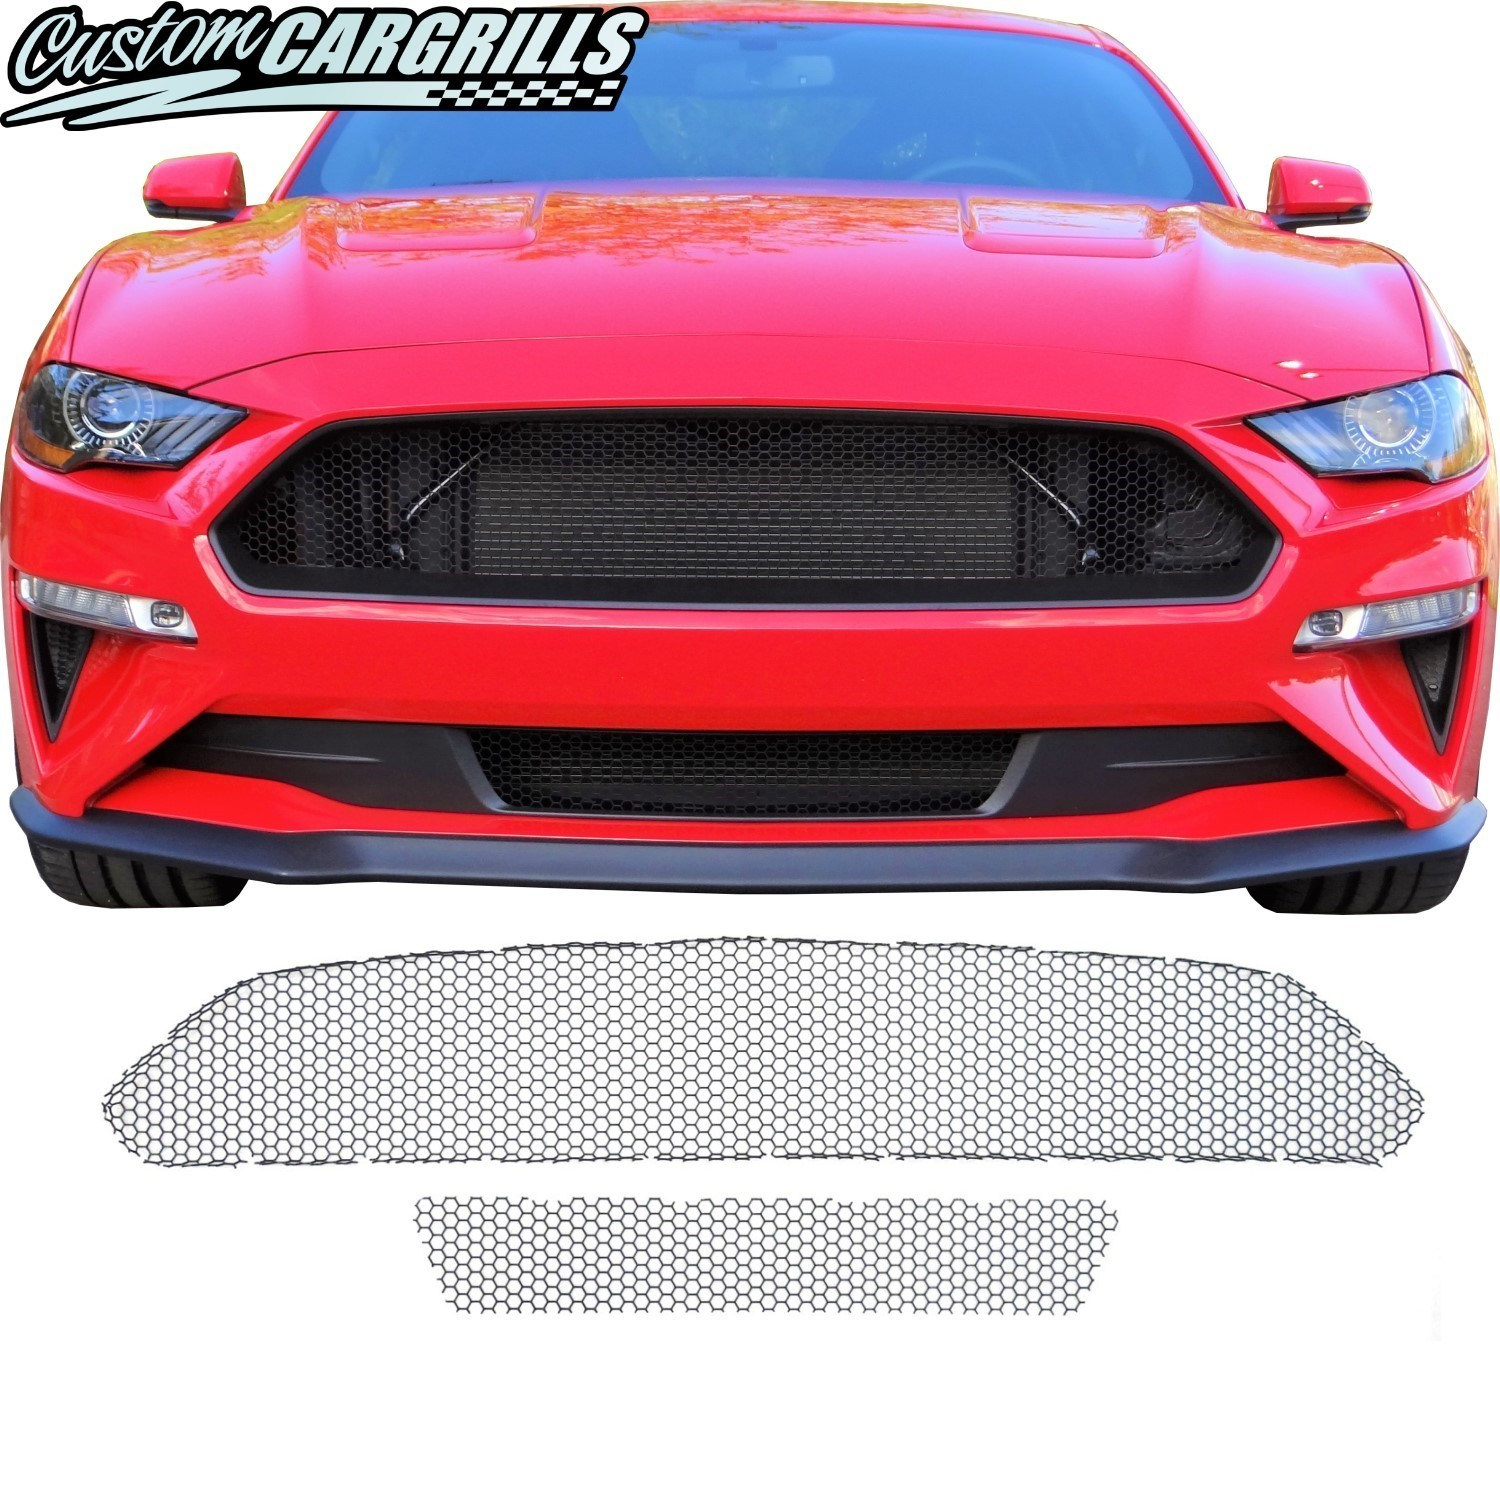 Honeycomb Mesh Grill Kit For 2018 2019 Ford Mustang Ecoboost